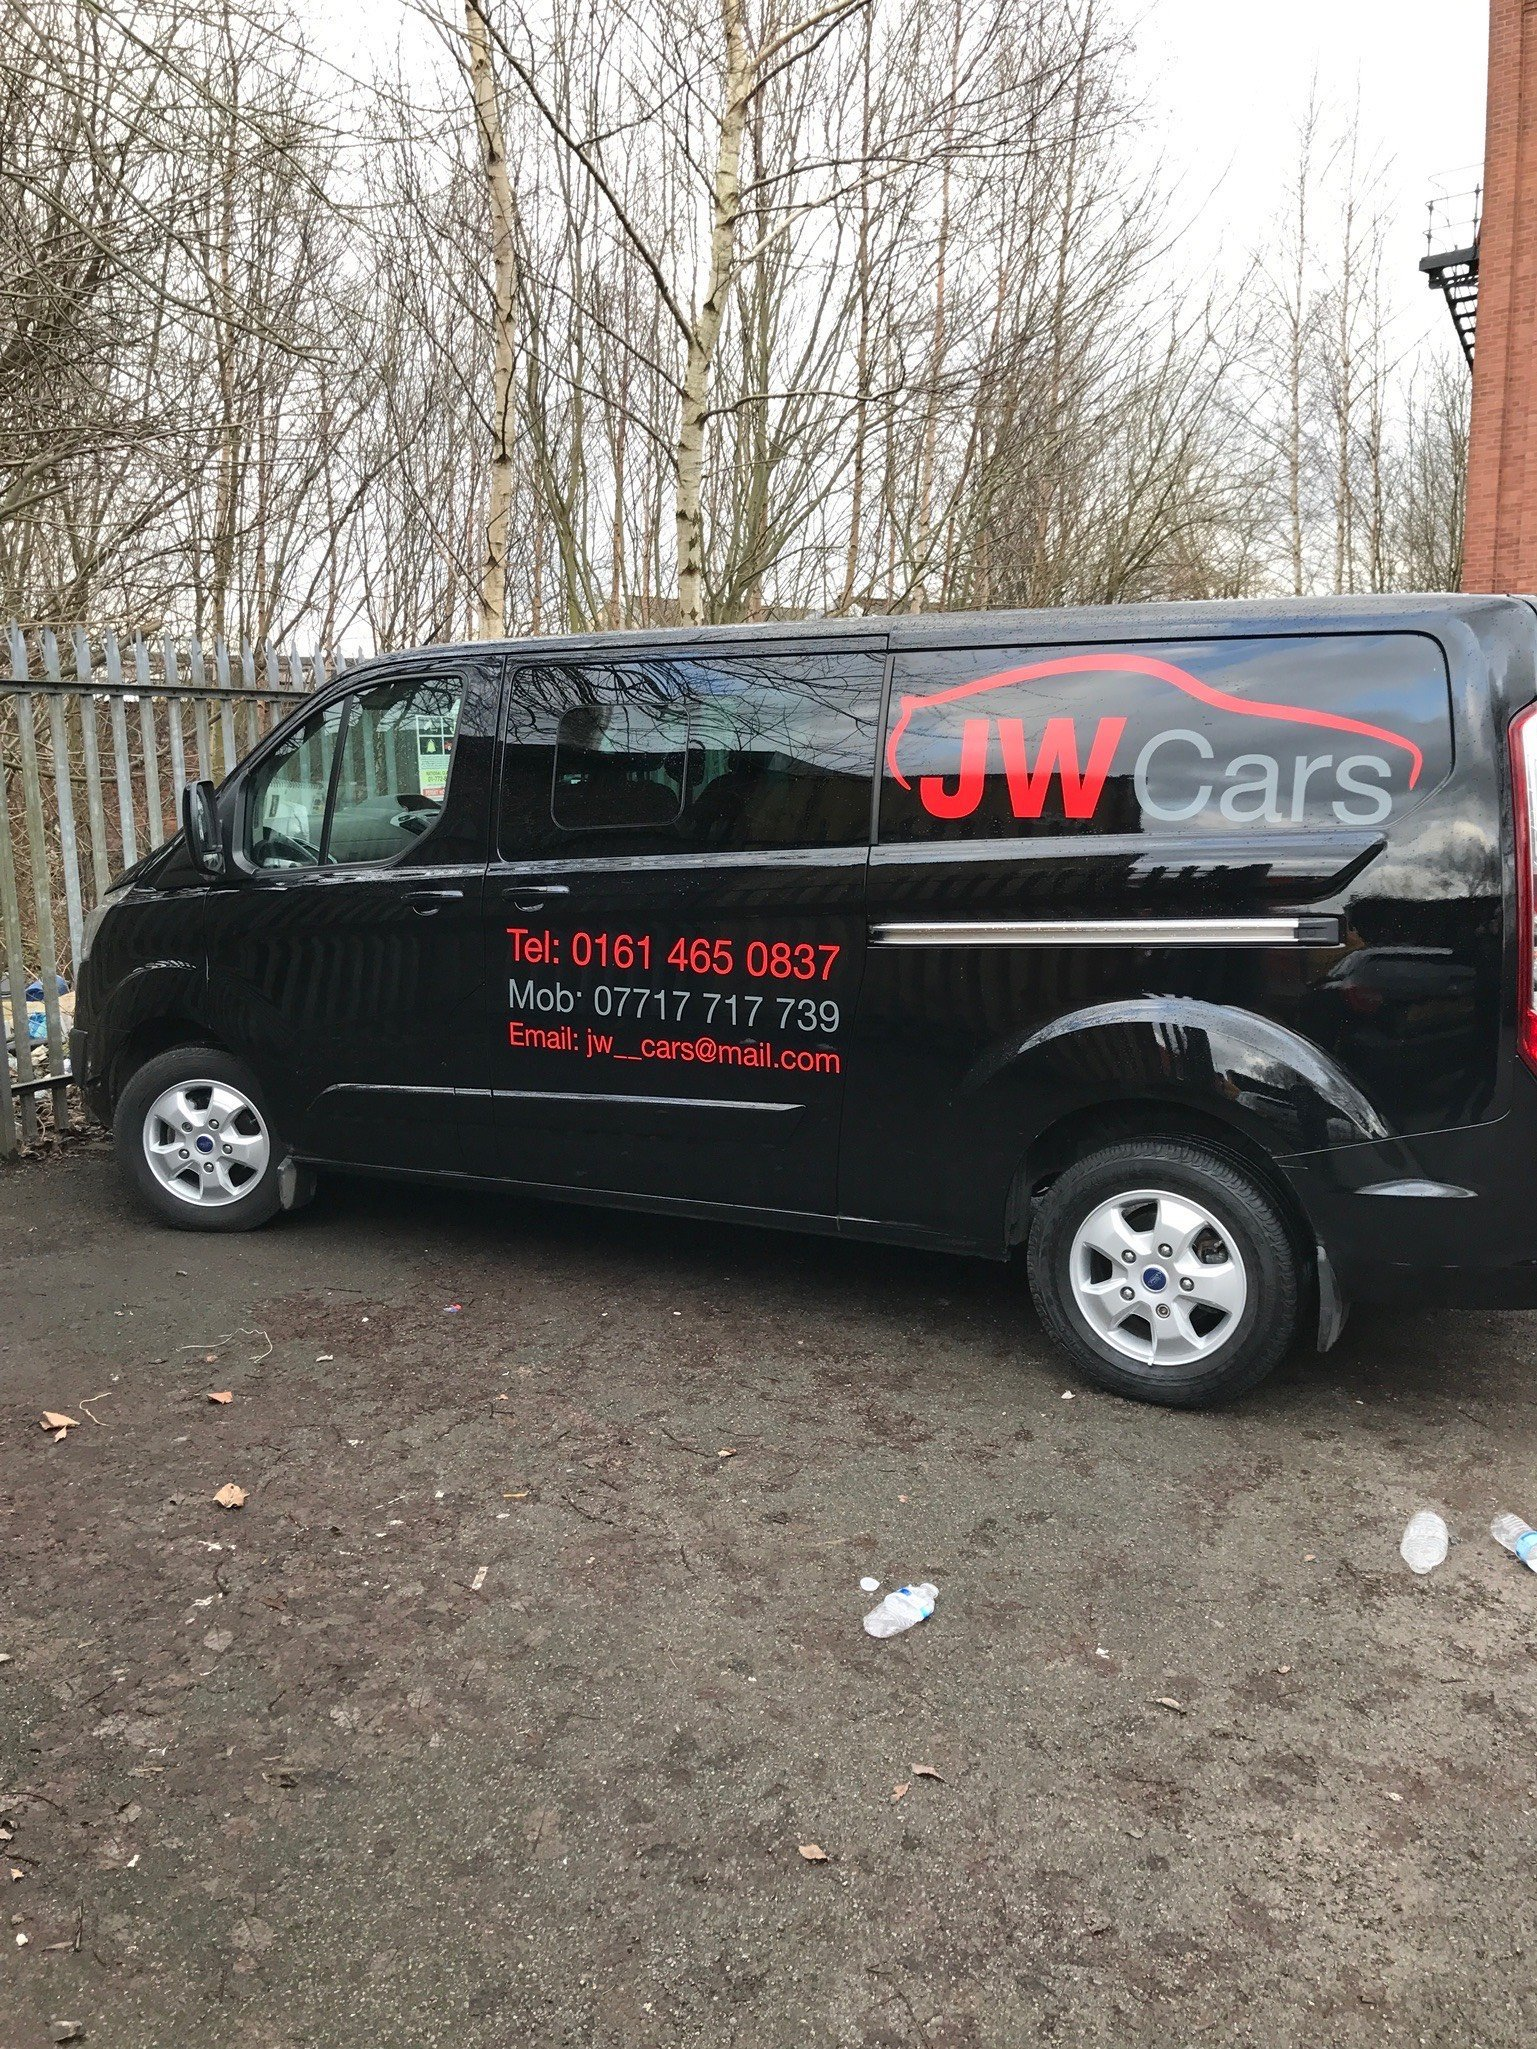 82a73695619 Vehicle Livery   Vinyl Graphics   Van Signs   Manchester